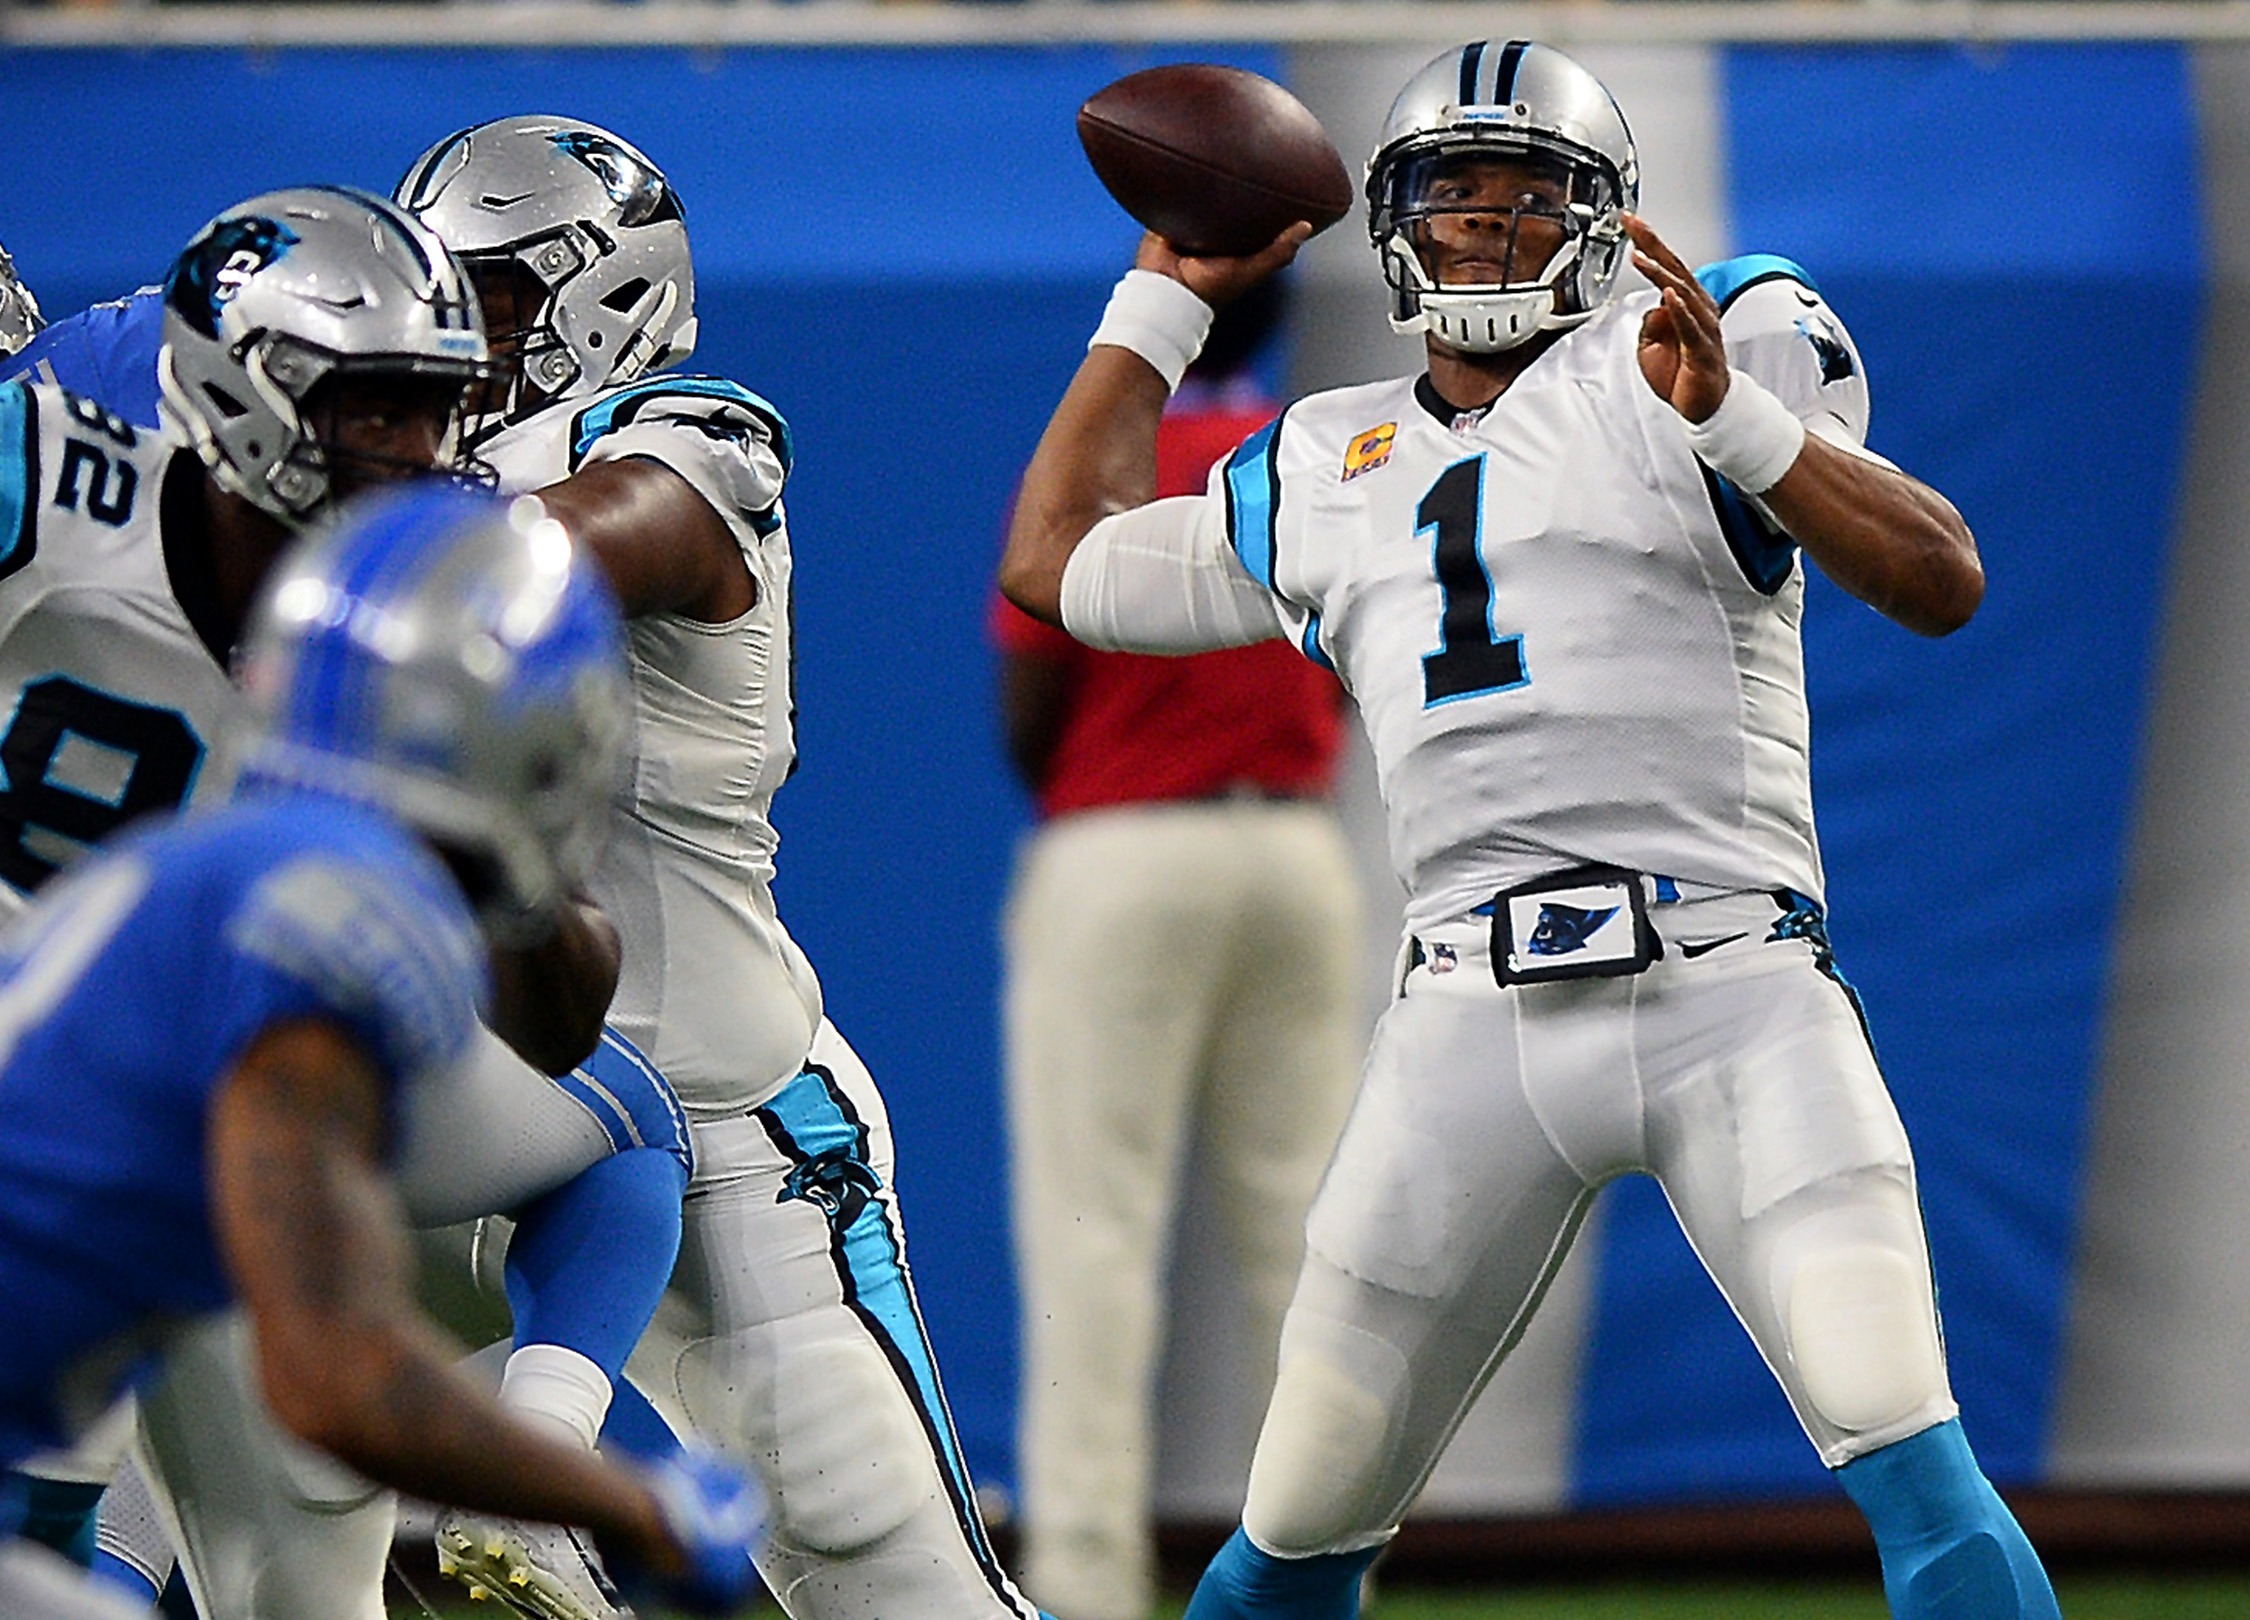 Carolina Panthers quarterback Cam Newton (1) drops back to pass in the first half against the Detroit Lions on Sunday, Oct. 8, 2017, at Ford Field in Detroit. The Panthers won, 27-24. (Jeff Siner/Charlotte Observer/TNS)